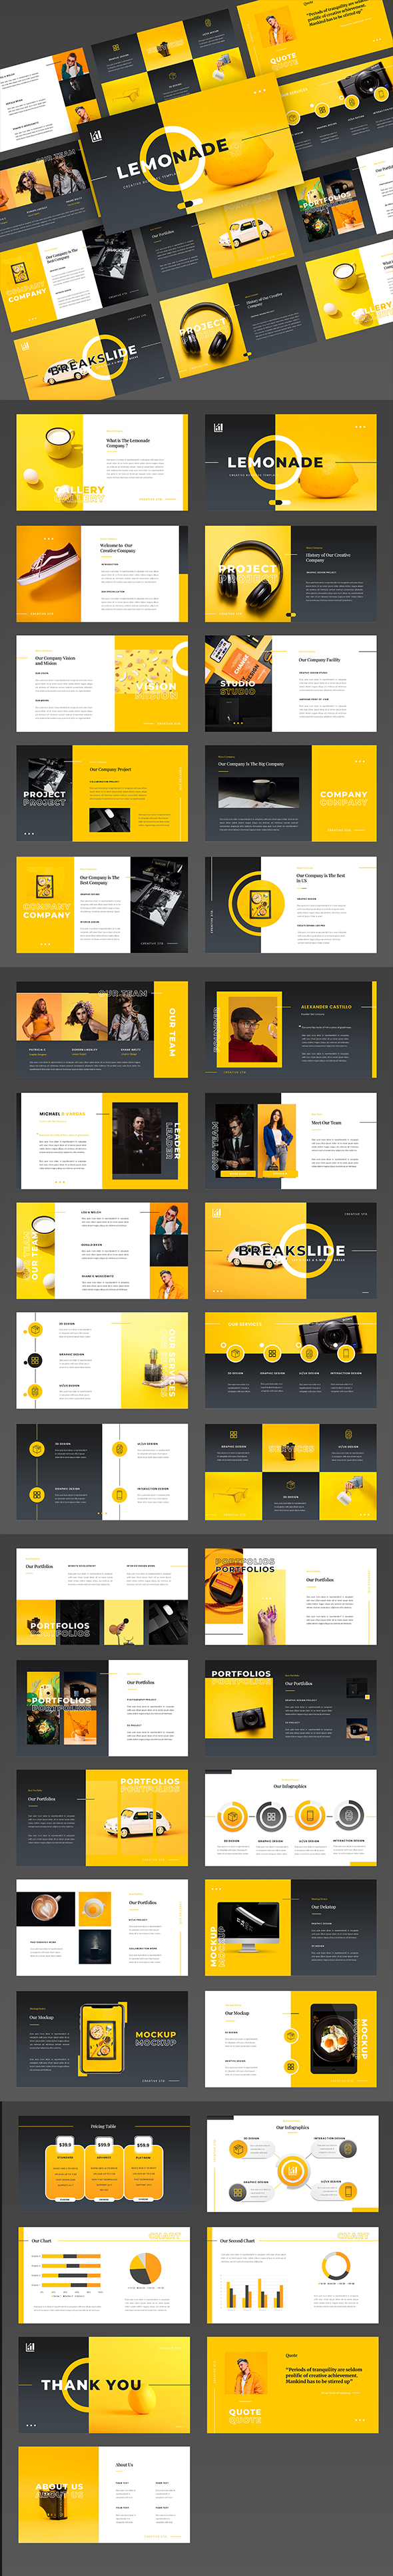 Flavo – Creative Business Google Slides Template